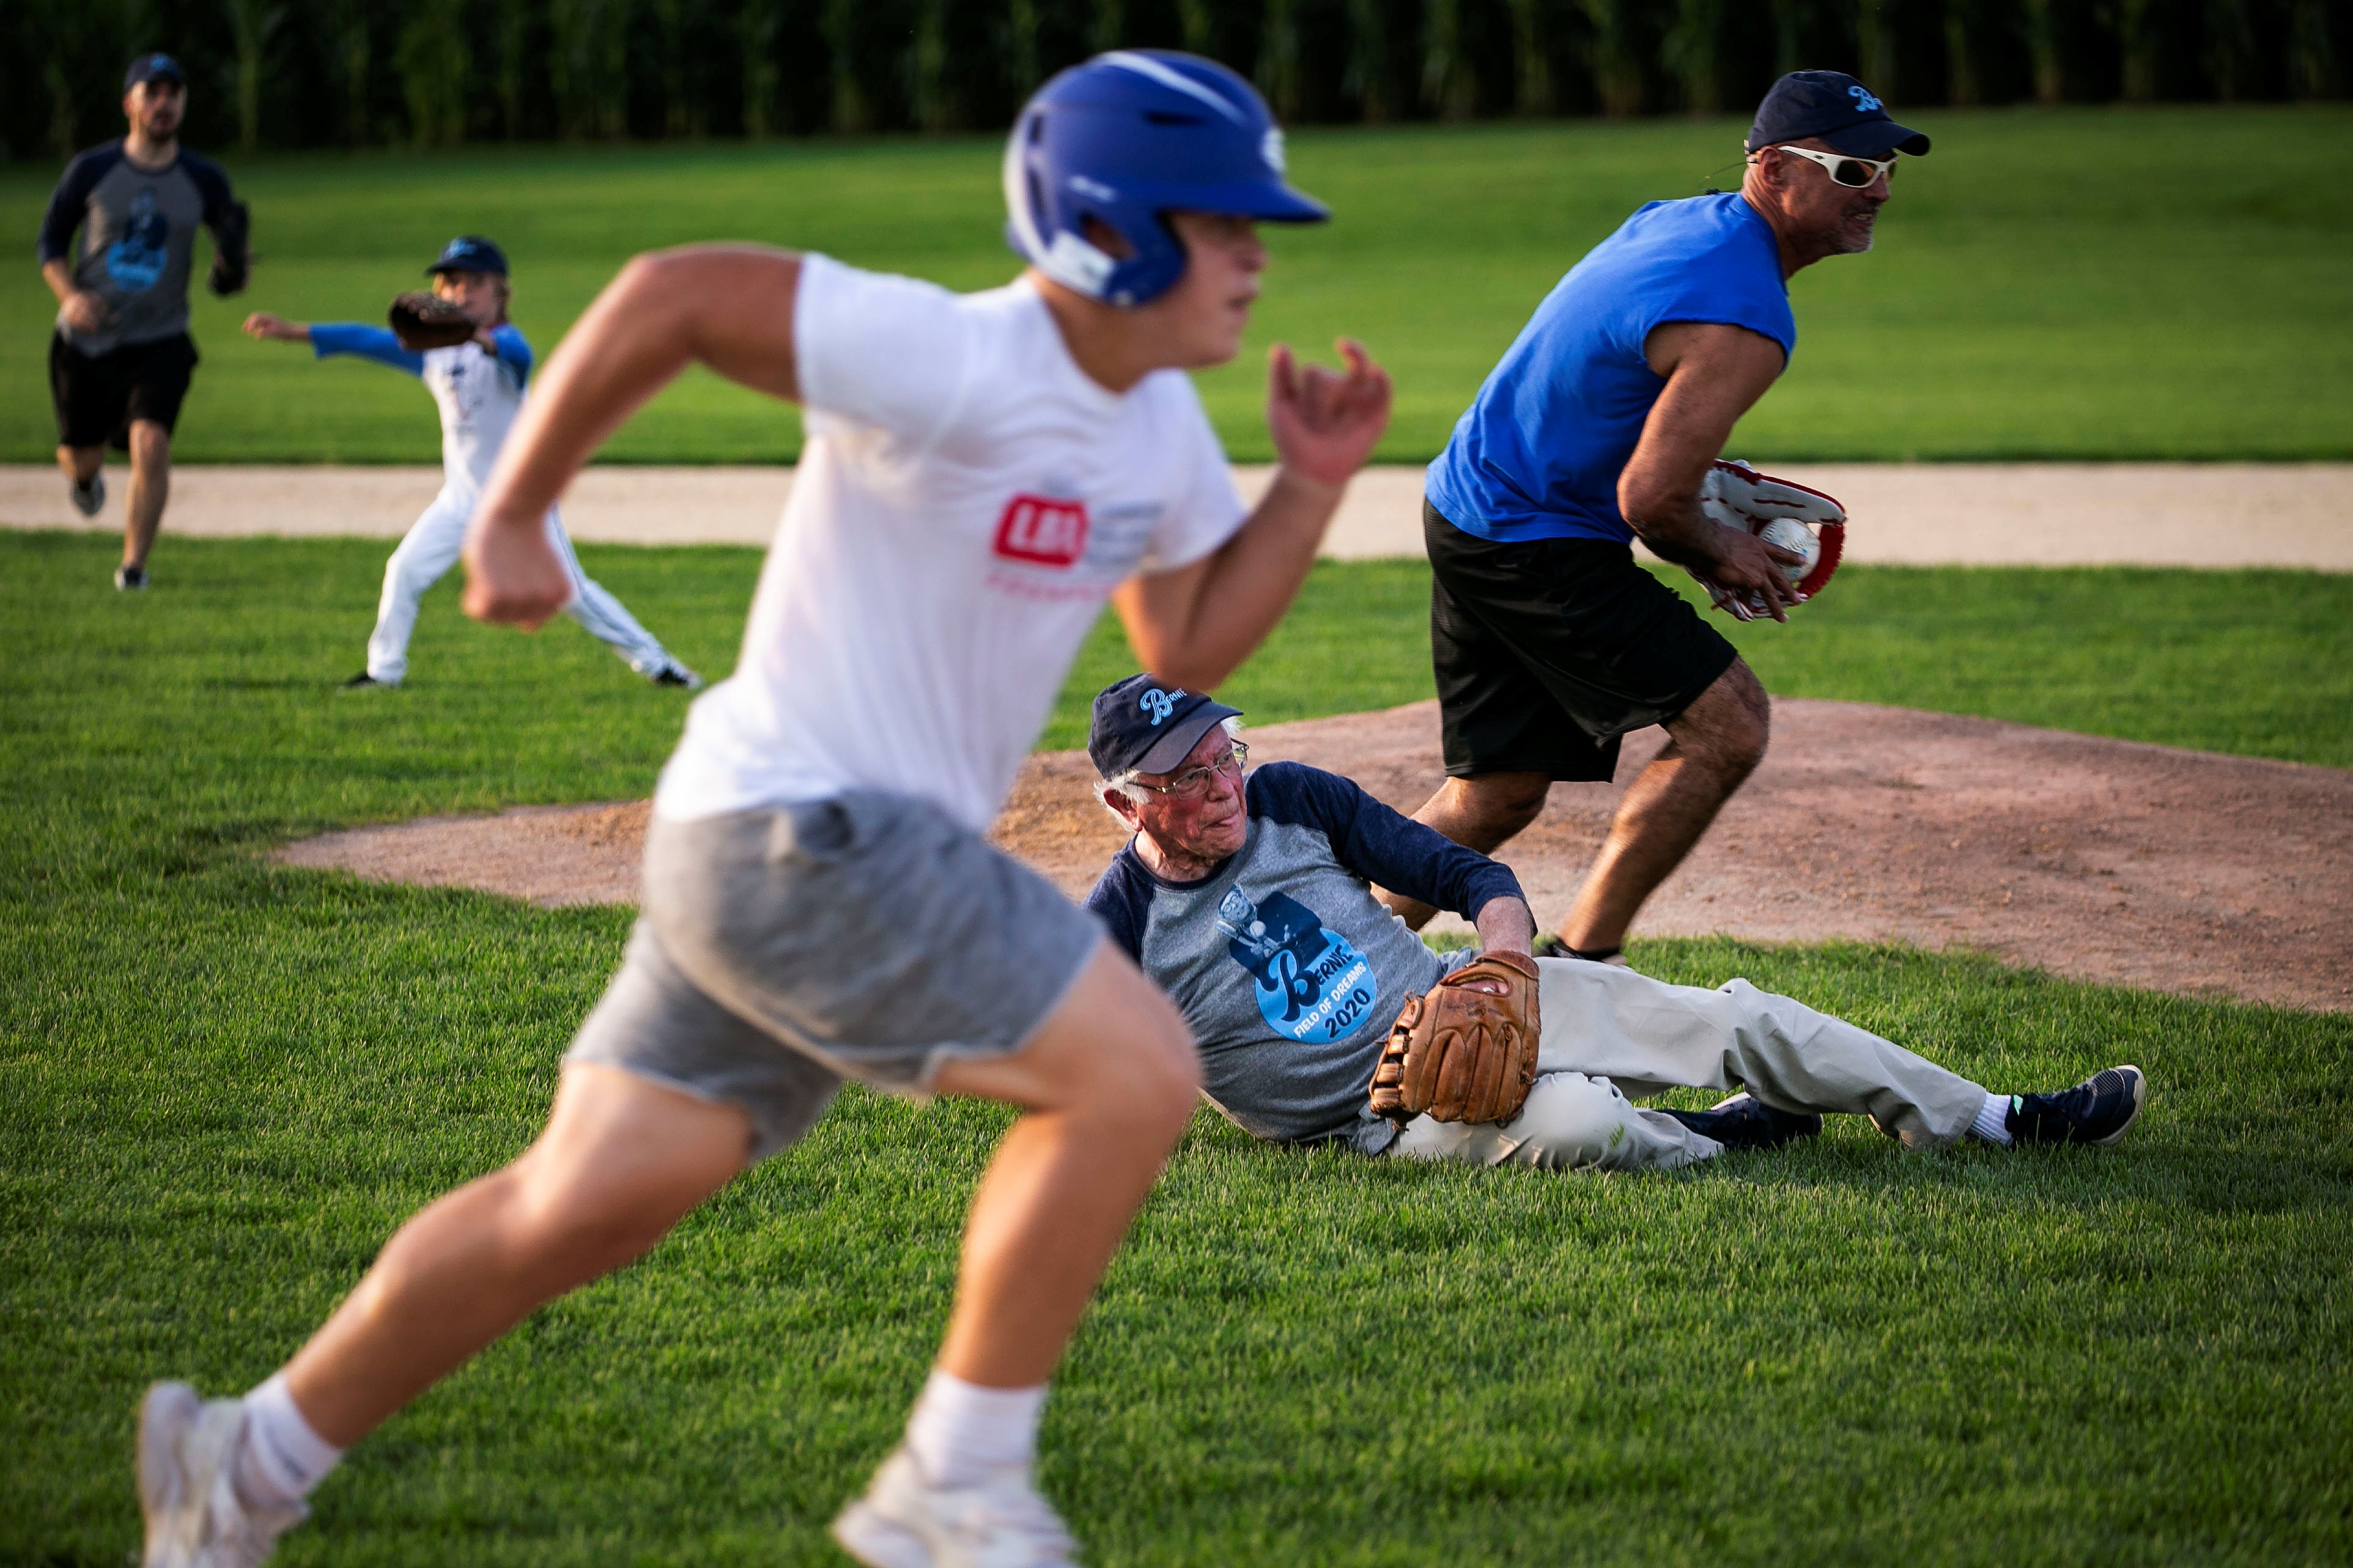 """2020 Democratic U.S. presidential candidate and U.S. Senator Bernie Sanders dives for the ball during a baseball game between his staff, """"The Revolutionaries,"""" and the Leaders Believers Achievers Foundation at the """"Field of Dreams"""" movie site in Dyersville, Iowa, U.S., August 19, 2019. REUTERS/Al Drago"""